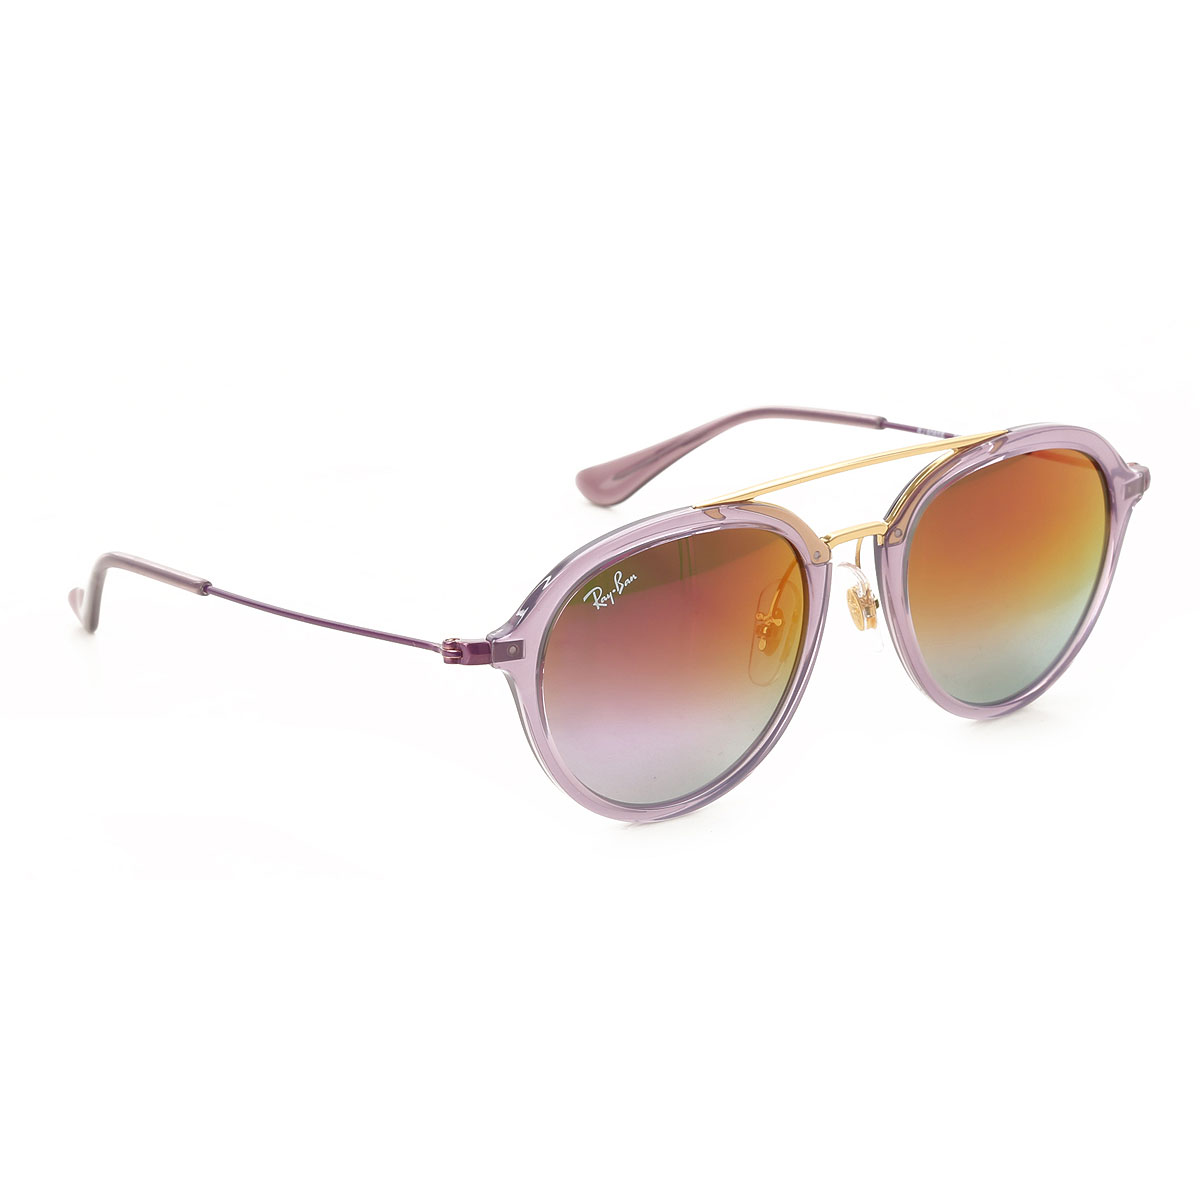 Image of Ray Ban Junior Girls Clothing On Sale, Lilac, 2017